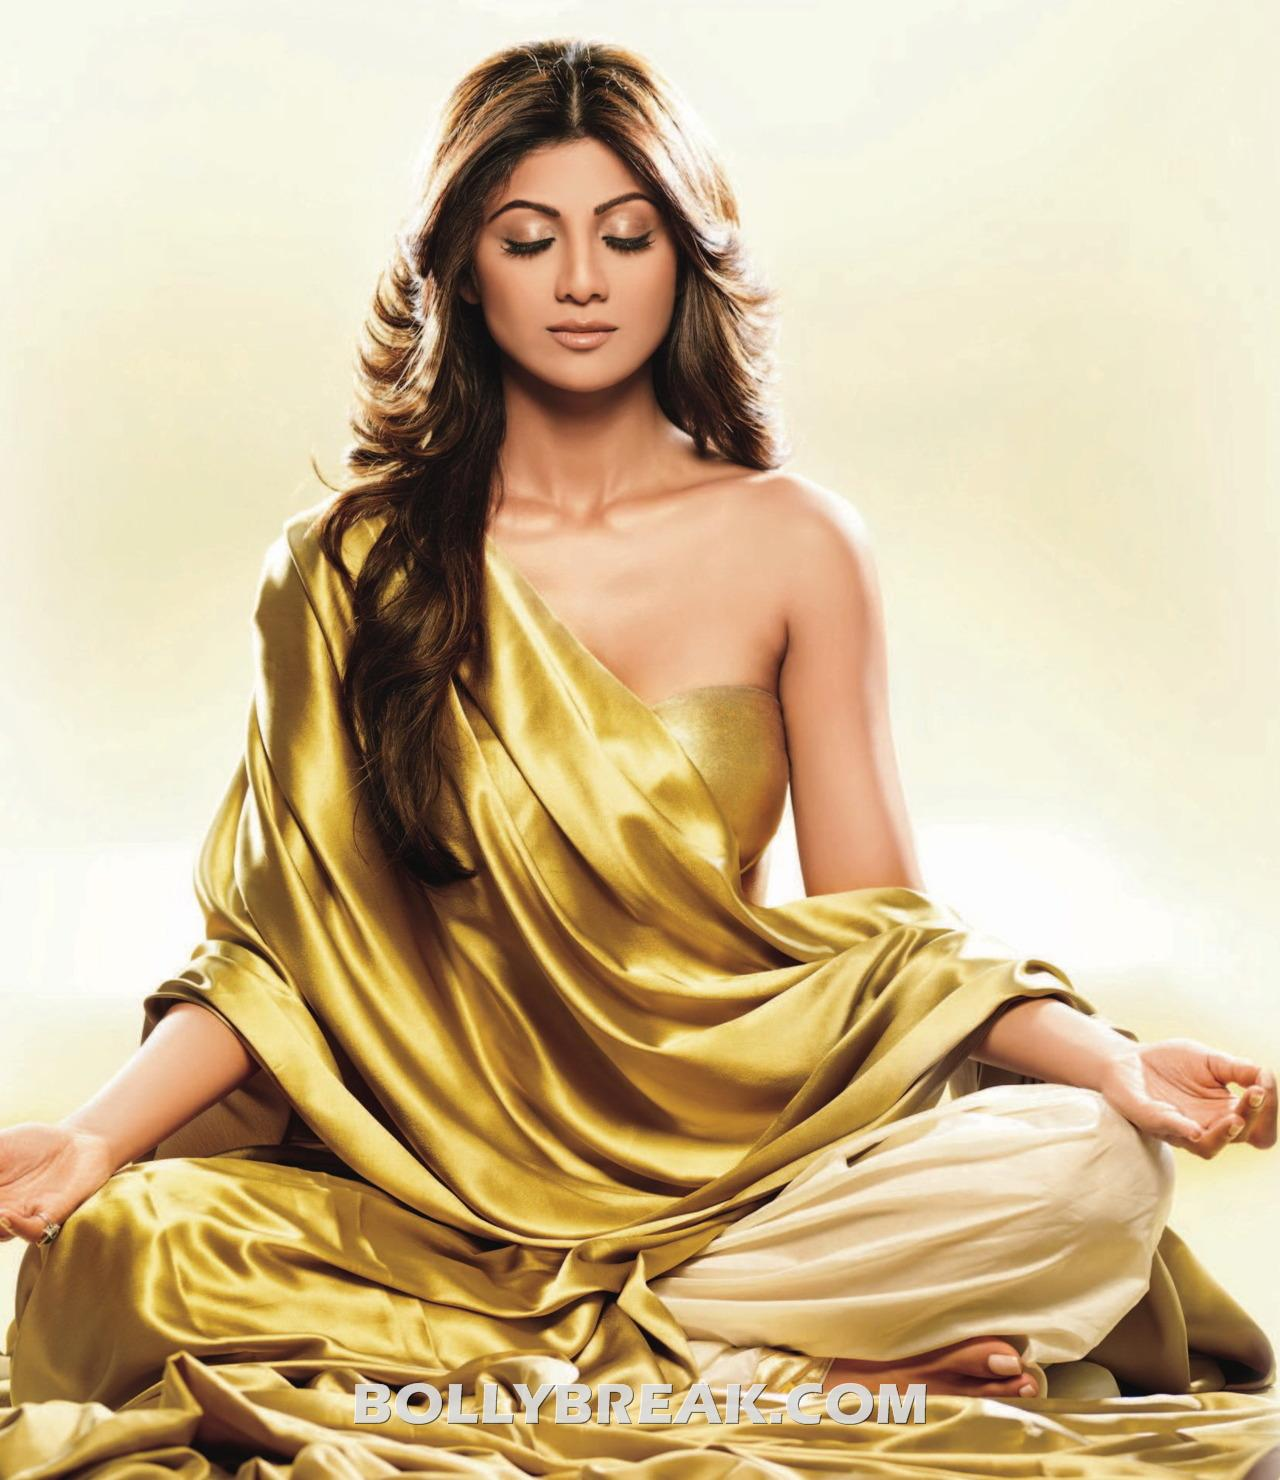 Shilpa Shetty doing yoga  wrapped in yellow golden bedsheet - Shilpa Shetty Hot Yoga Wallpaper - Golden Bedsheet